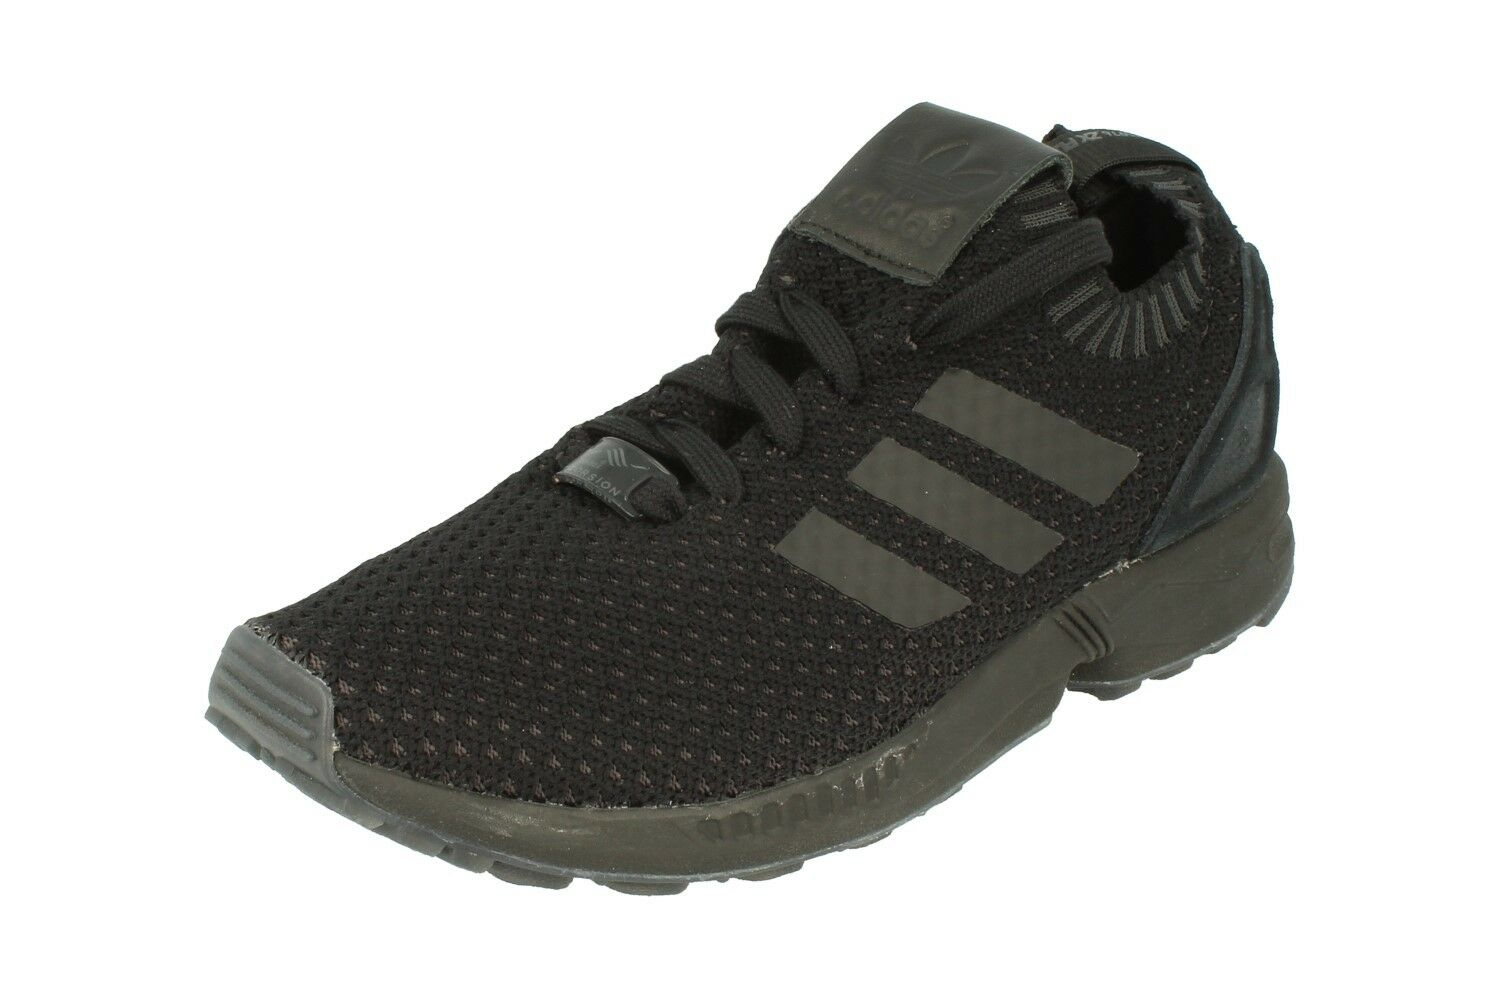 Adidas Originals Zx Flux Pk Mens Running Trainers Sneakers S75976